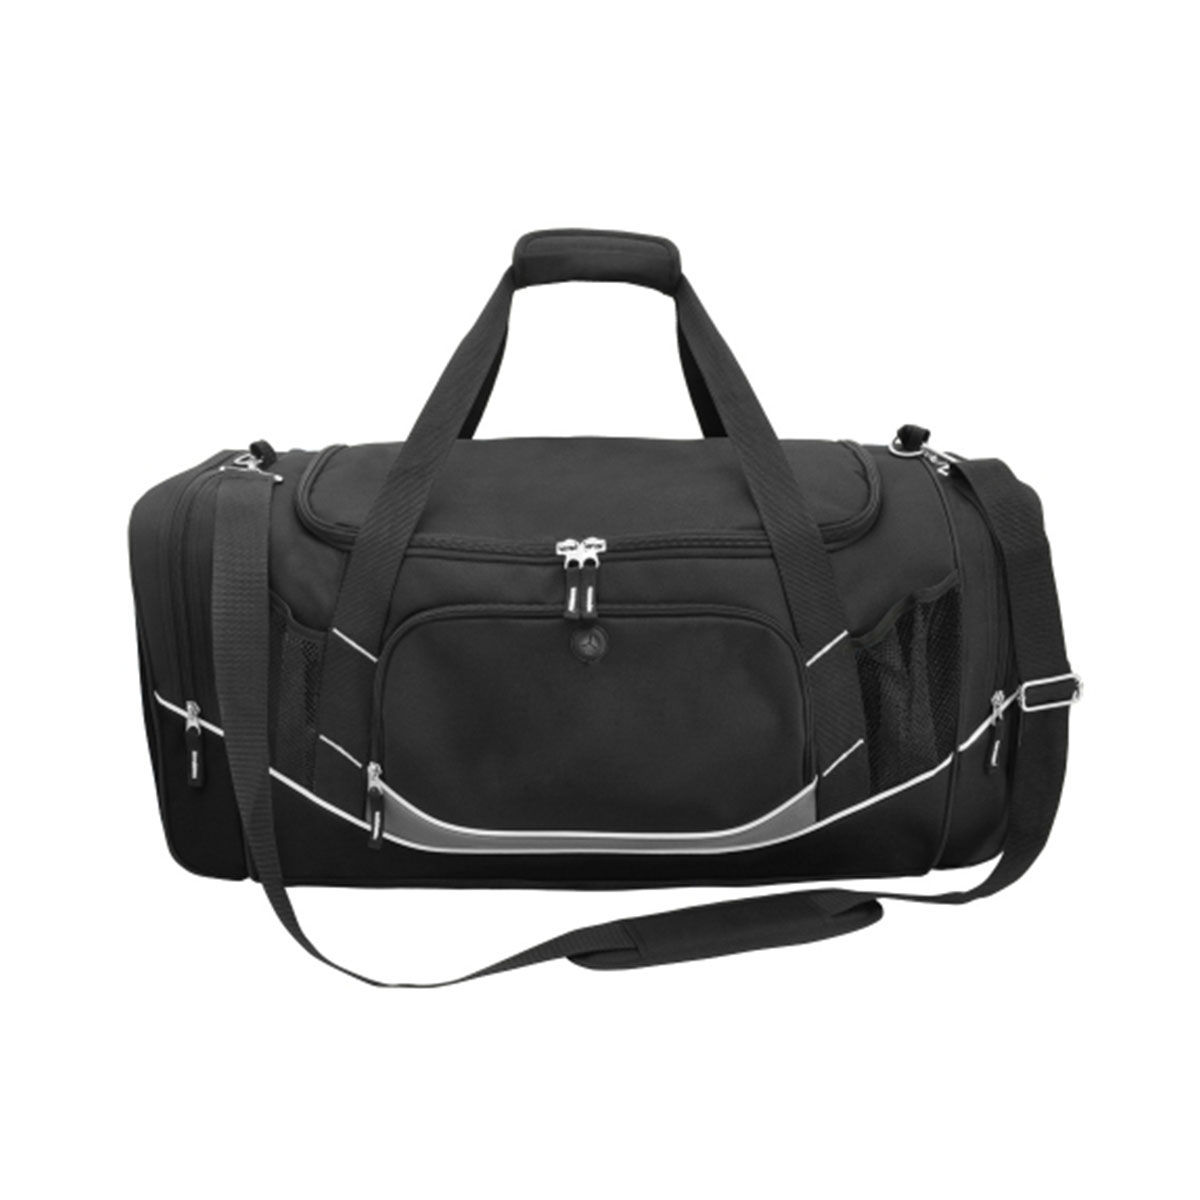 Atlantis Sports Bag-Black / Black / White / Charcoal